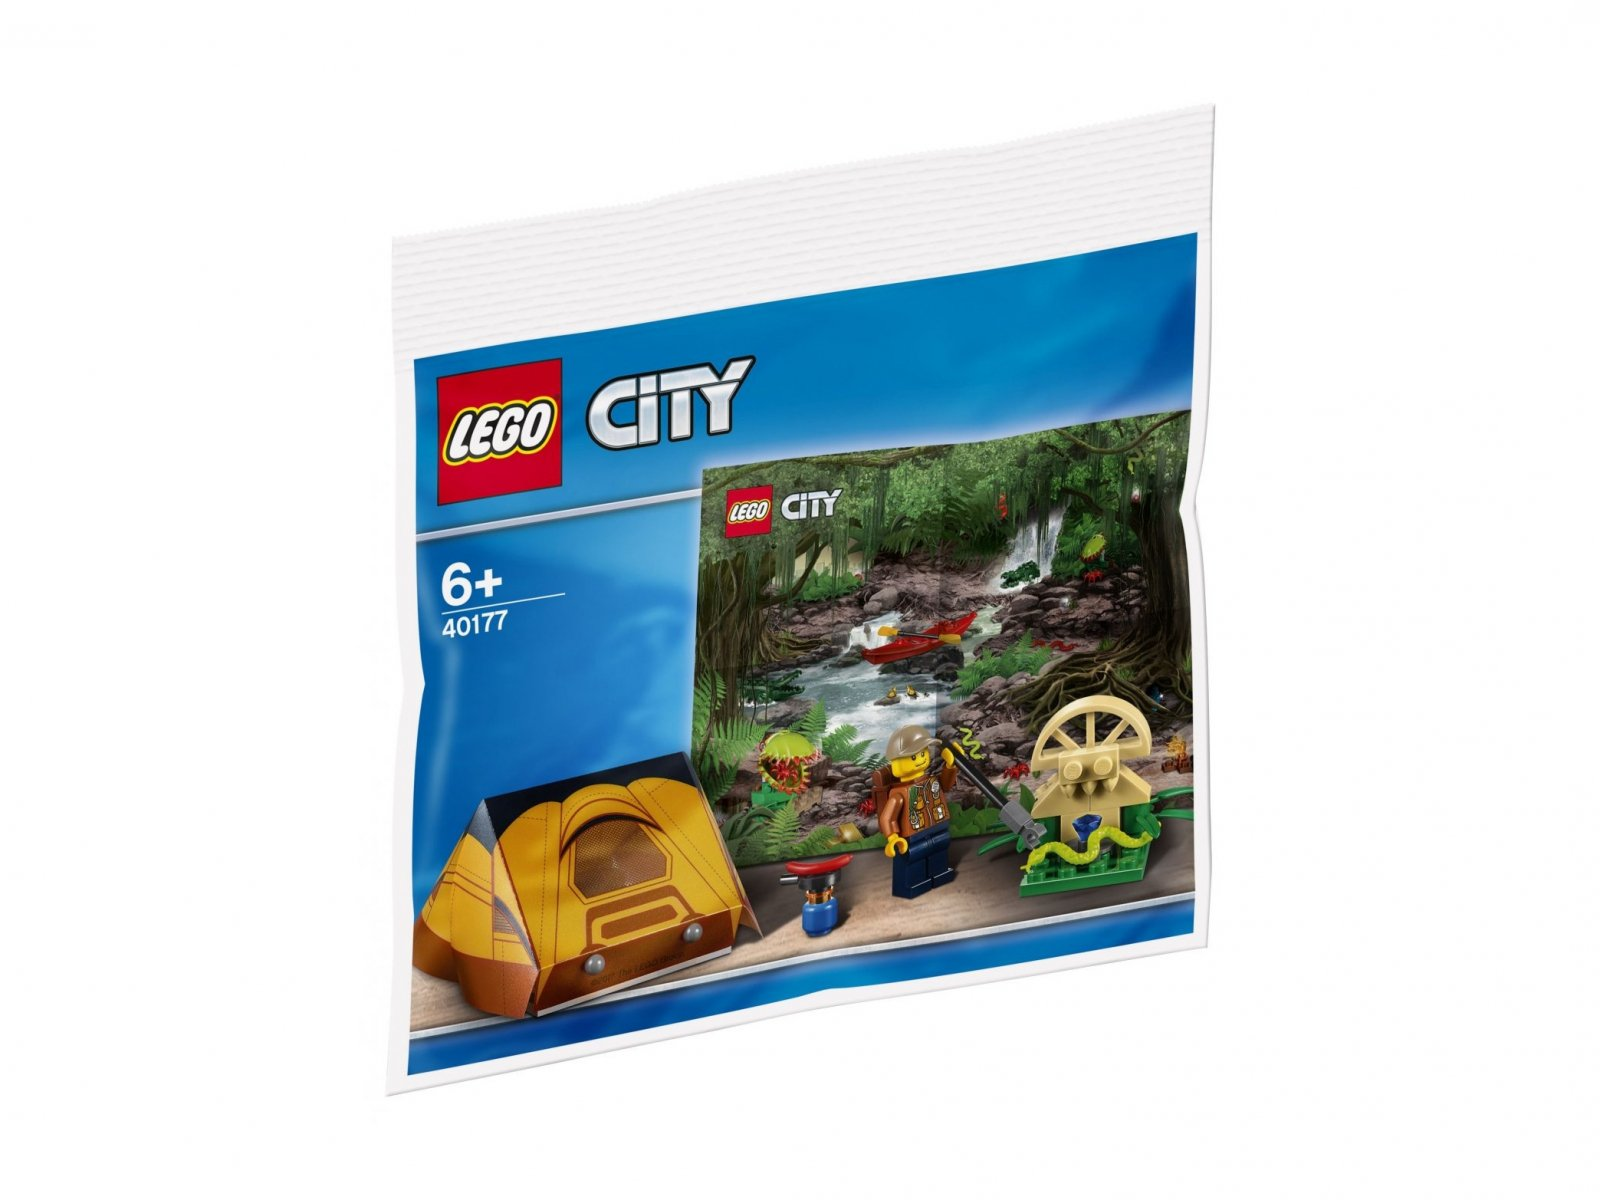 LEGO City City Jungle Explorer Kit 40177